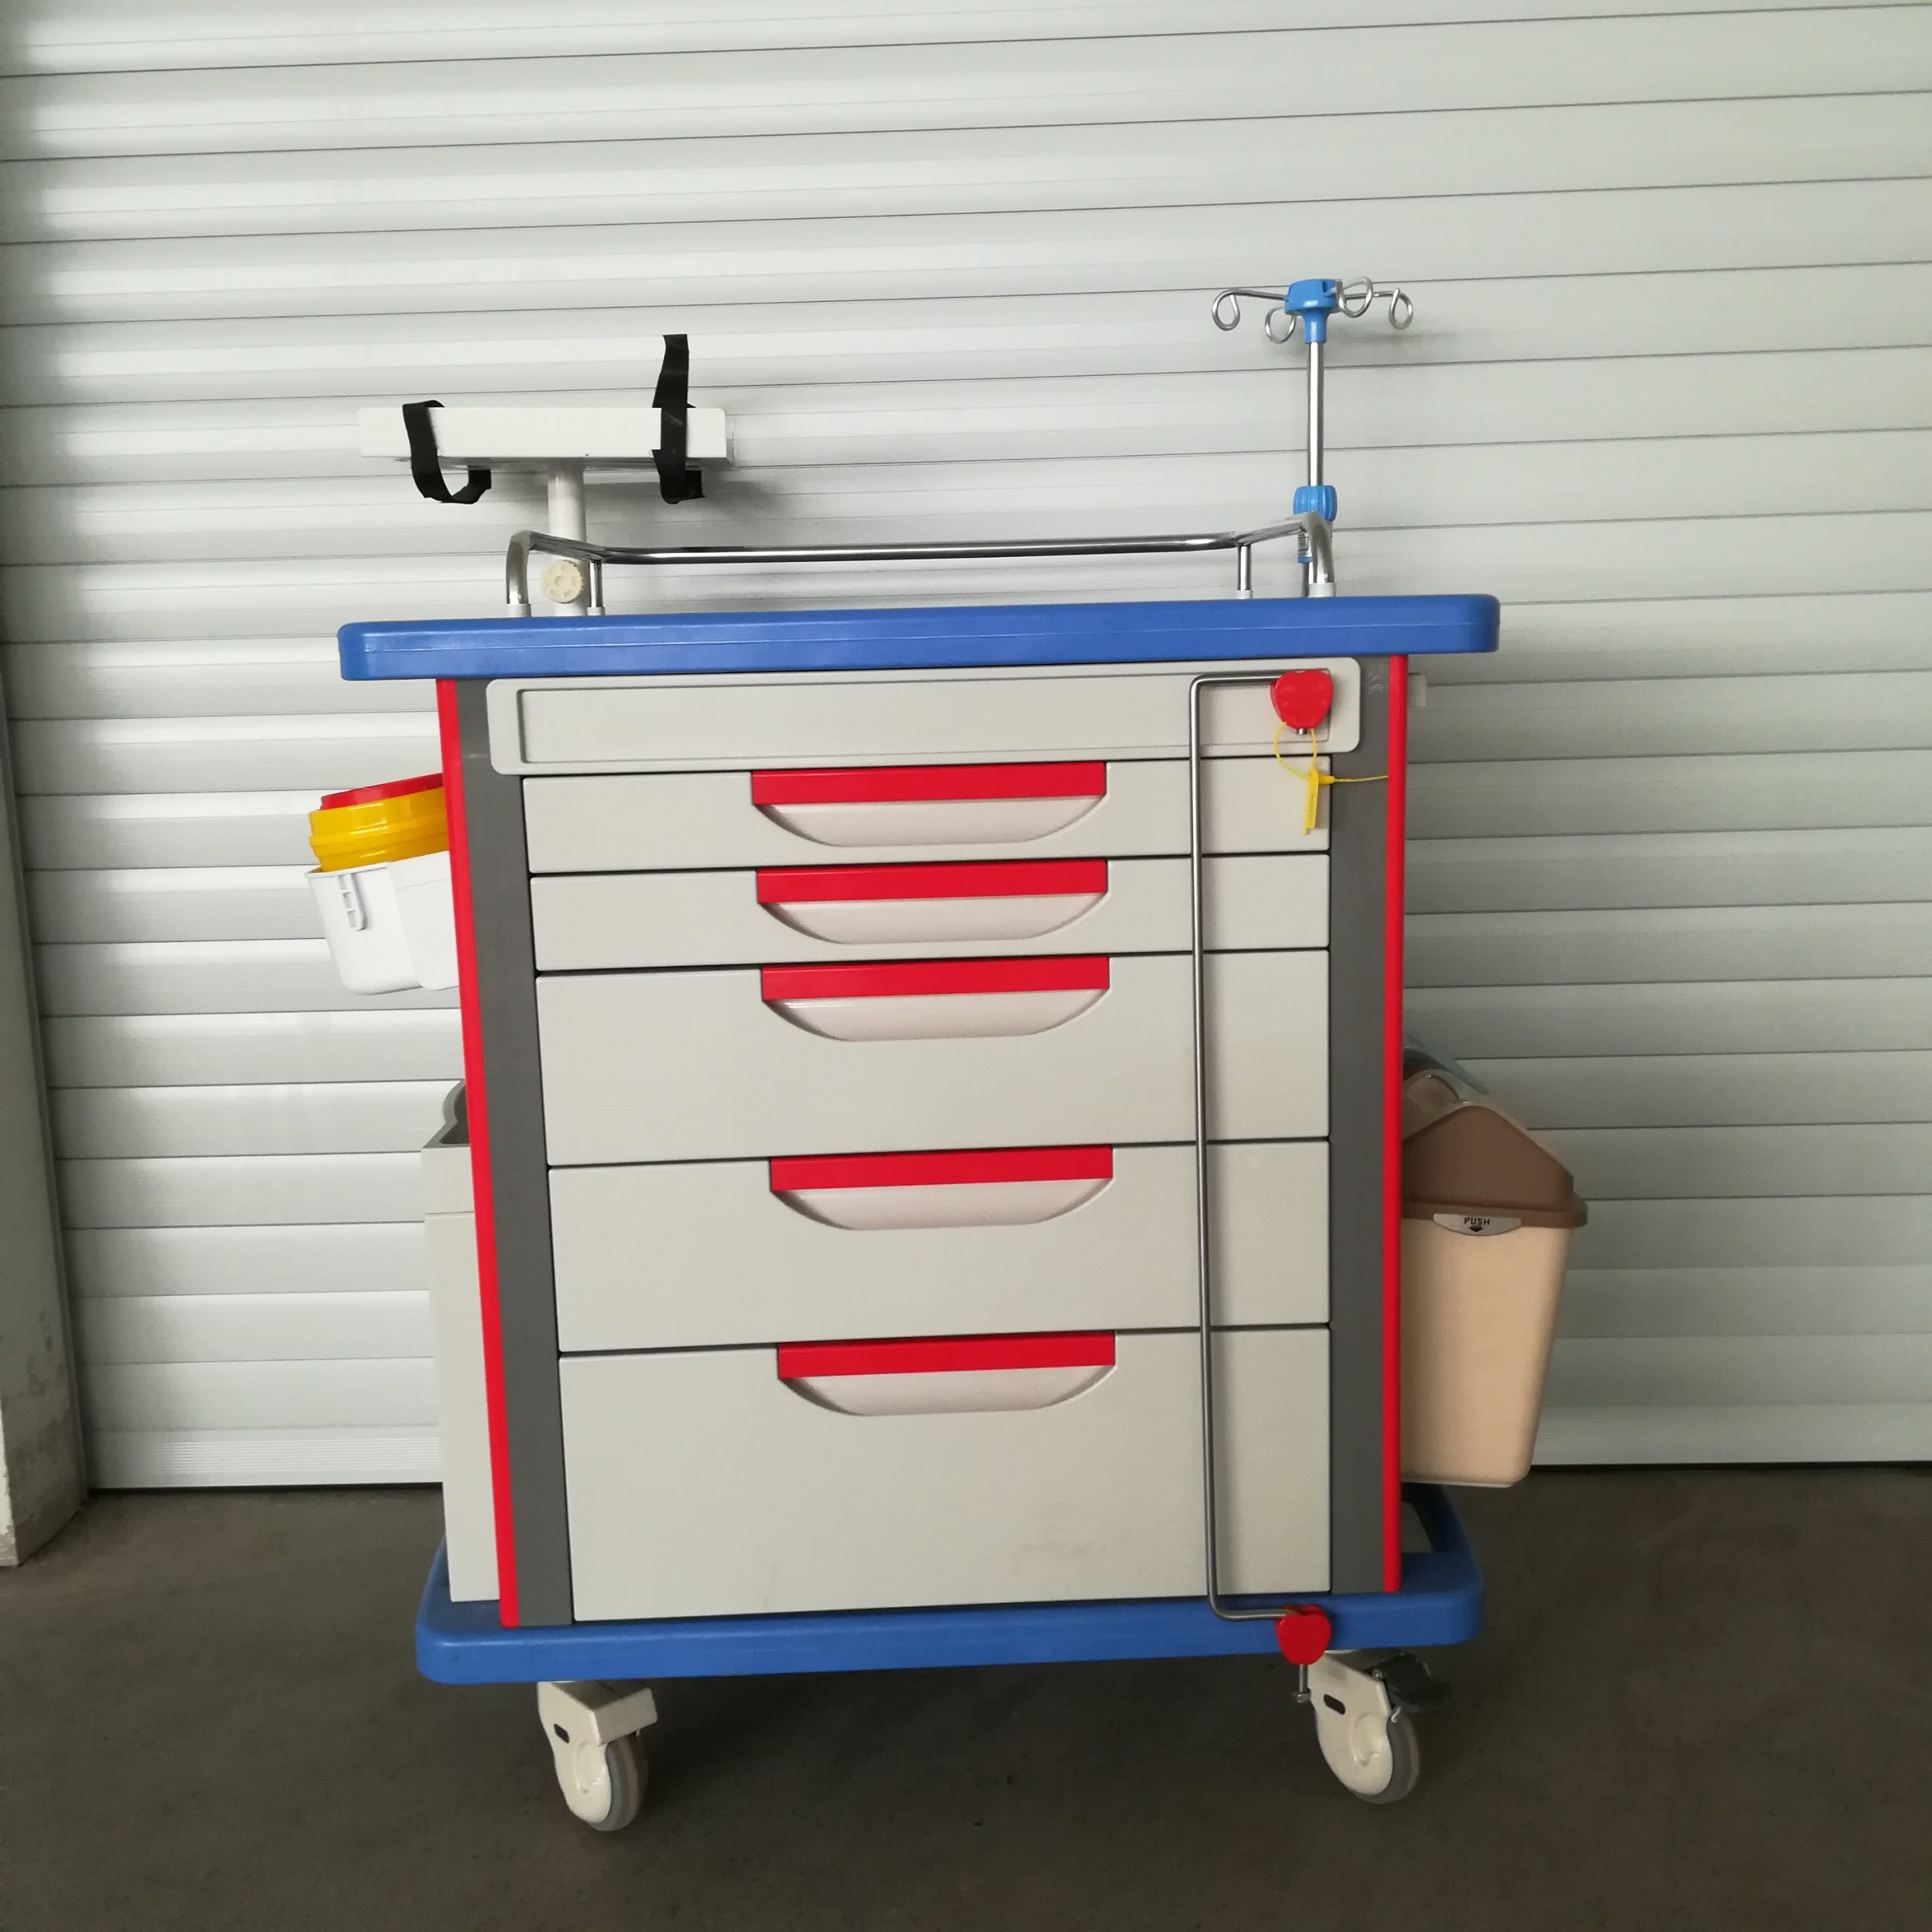 Lite Emergency Crash Cart with Accessories, IV Pole, Cardiac Board, O2 Holder, Power Strip with disposable lock